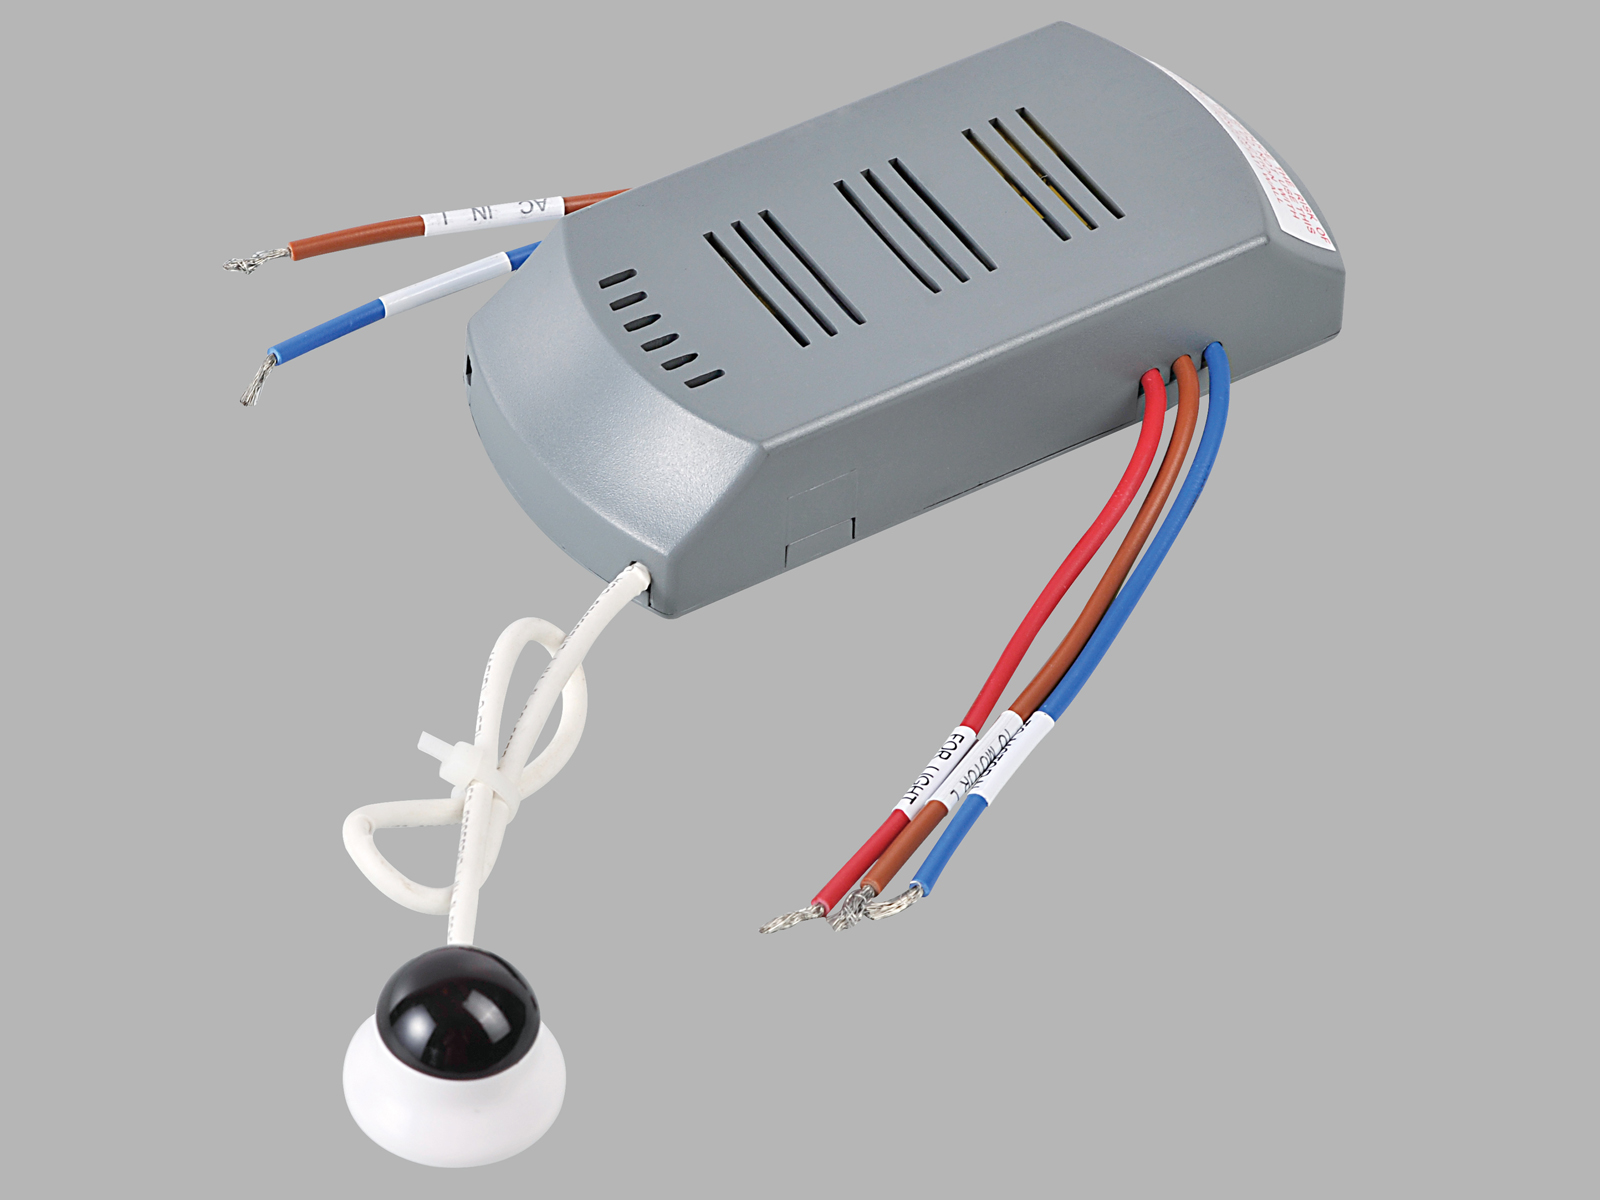 index ceiling alpha control fan remote rc